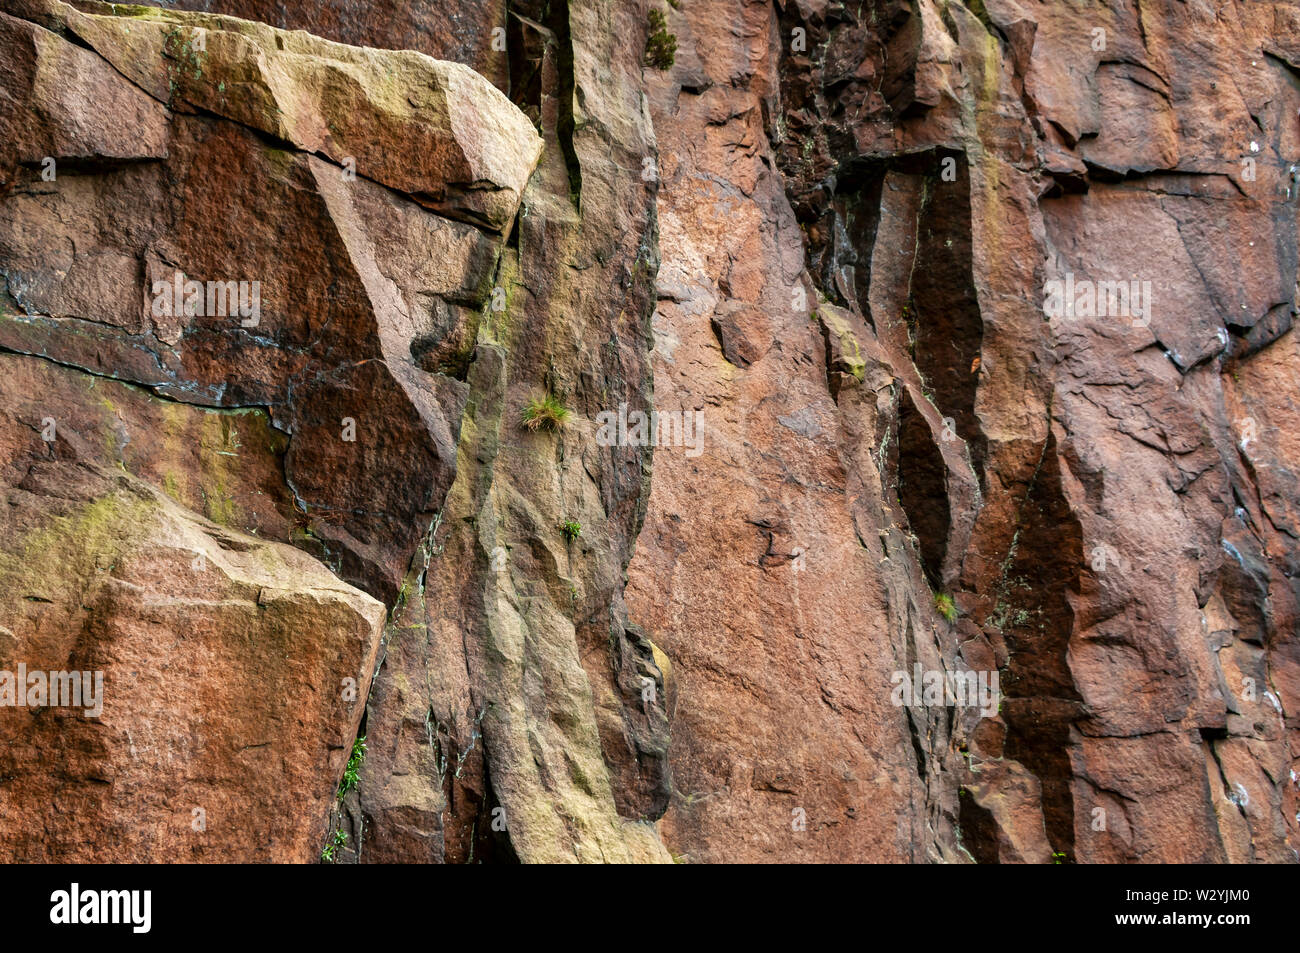 Semi-abstract view of a working face at Millstone Edge Quarry near Hathersage. Stock Photo